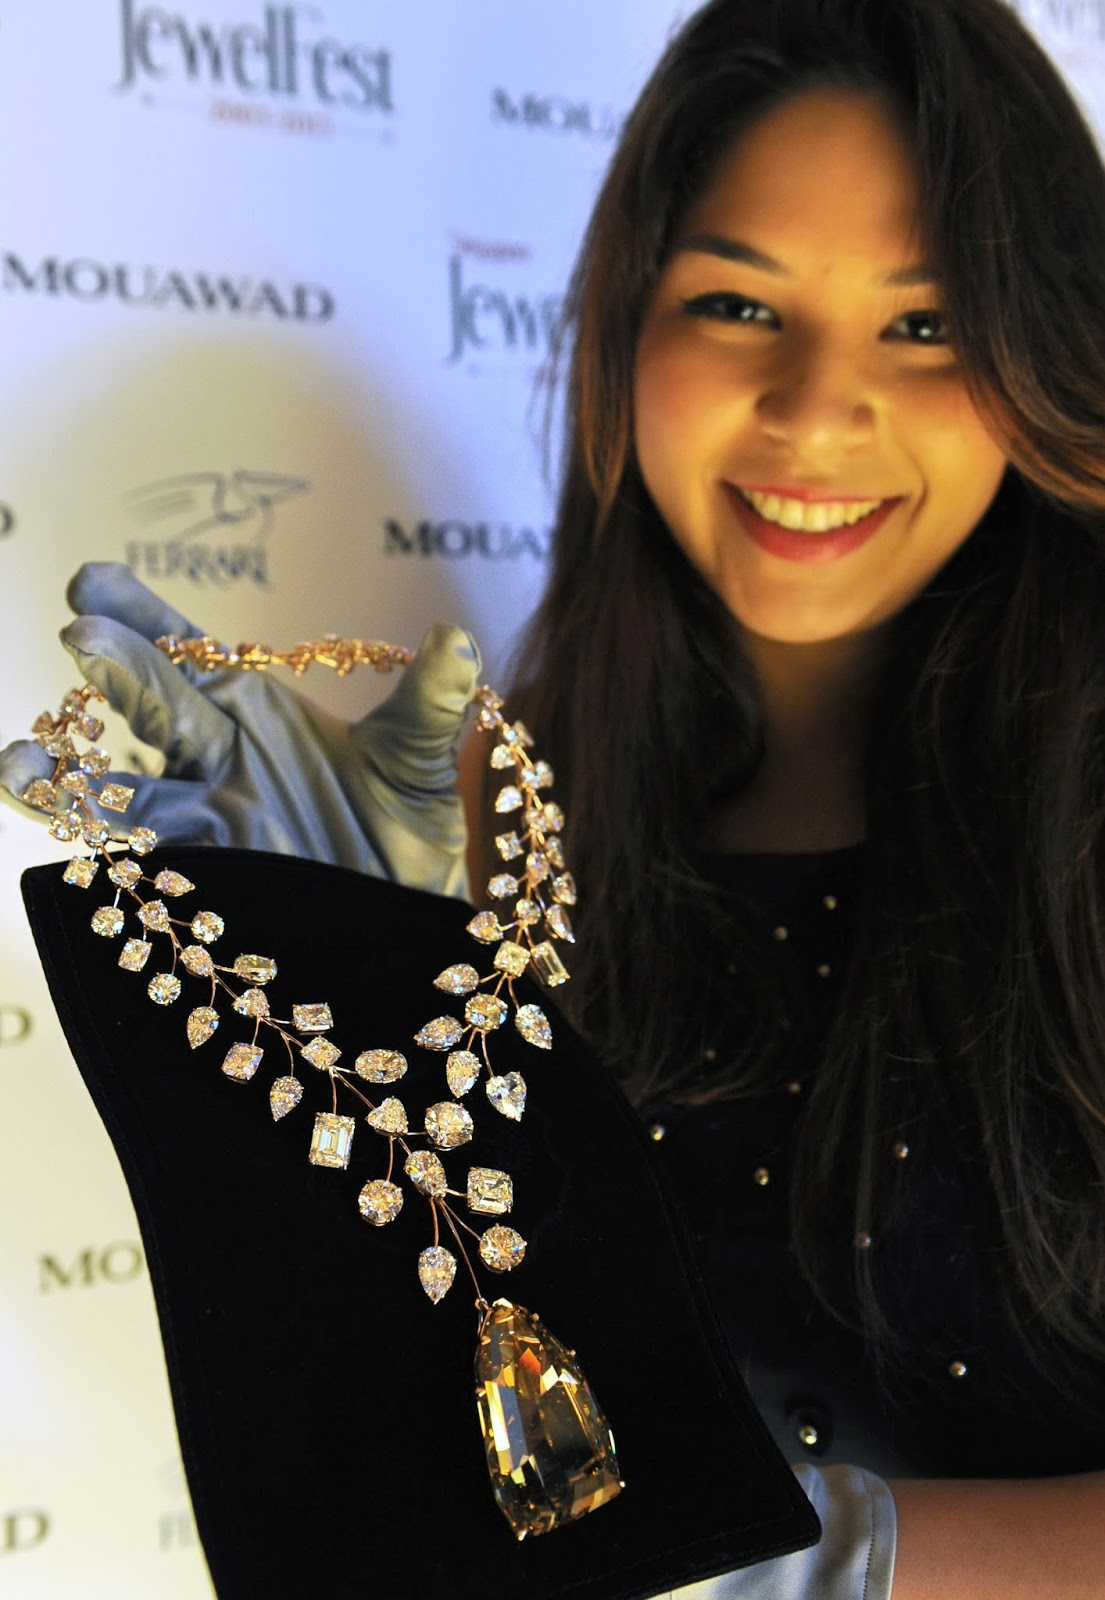 Carat, Diamond, Dubai, Flawless, Golden Giant, Guinness World Record, Jewellery, Million, Most Valuable Necklace, Mouawad, Singapore, USD, Business, Economy,